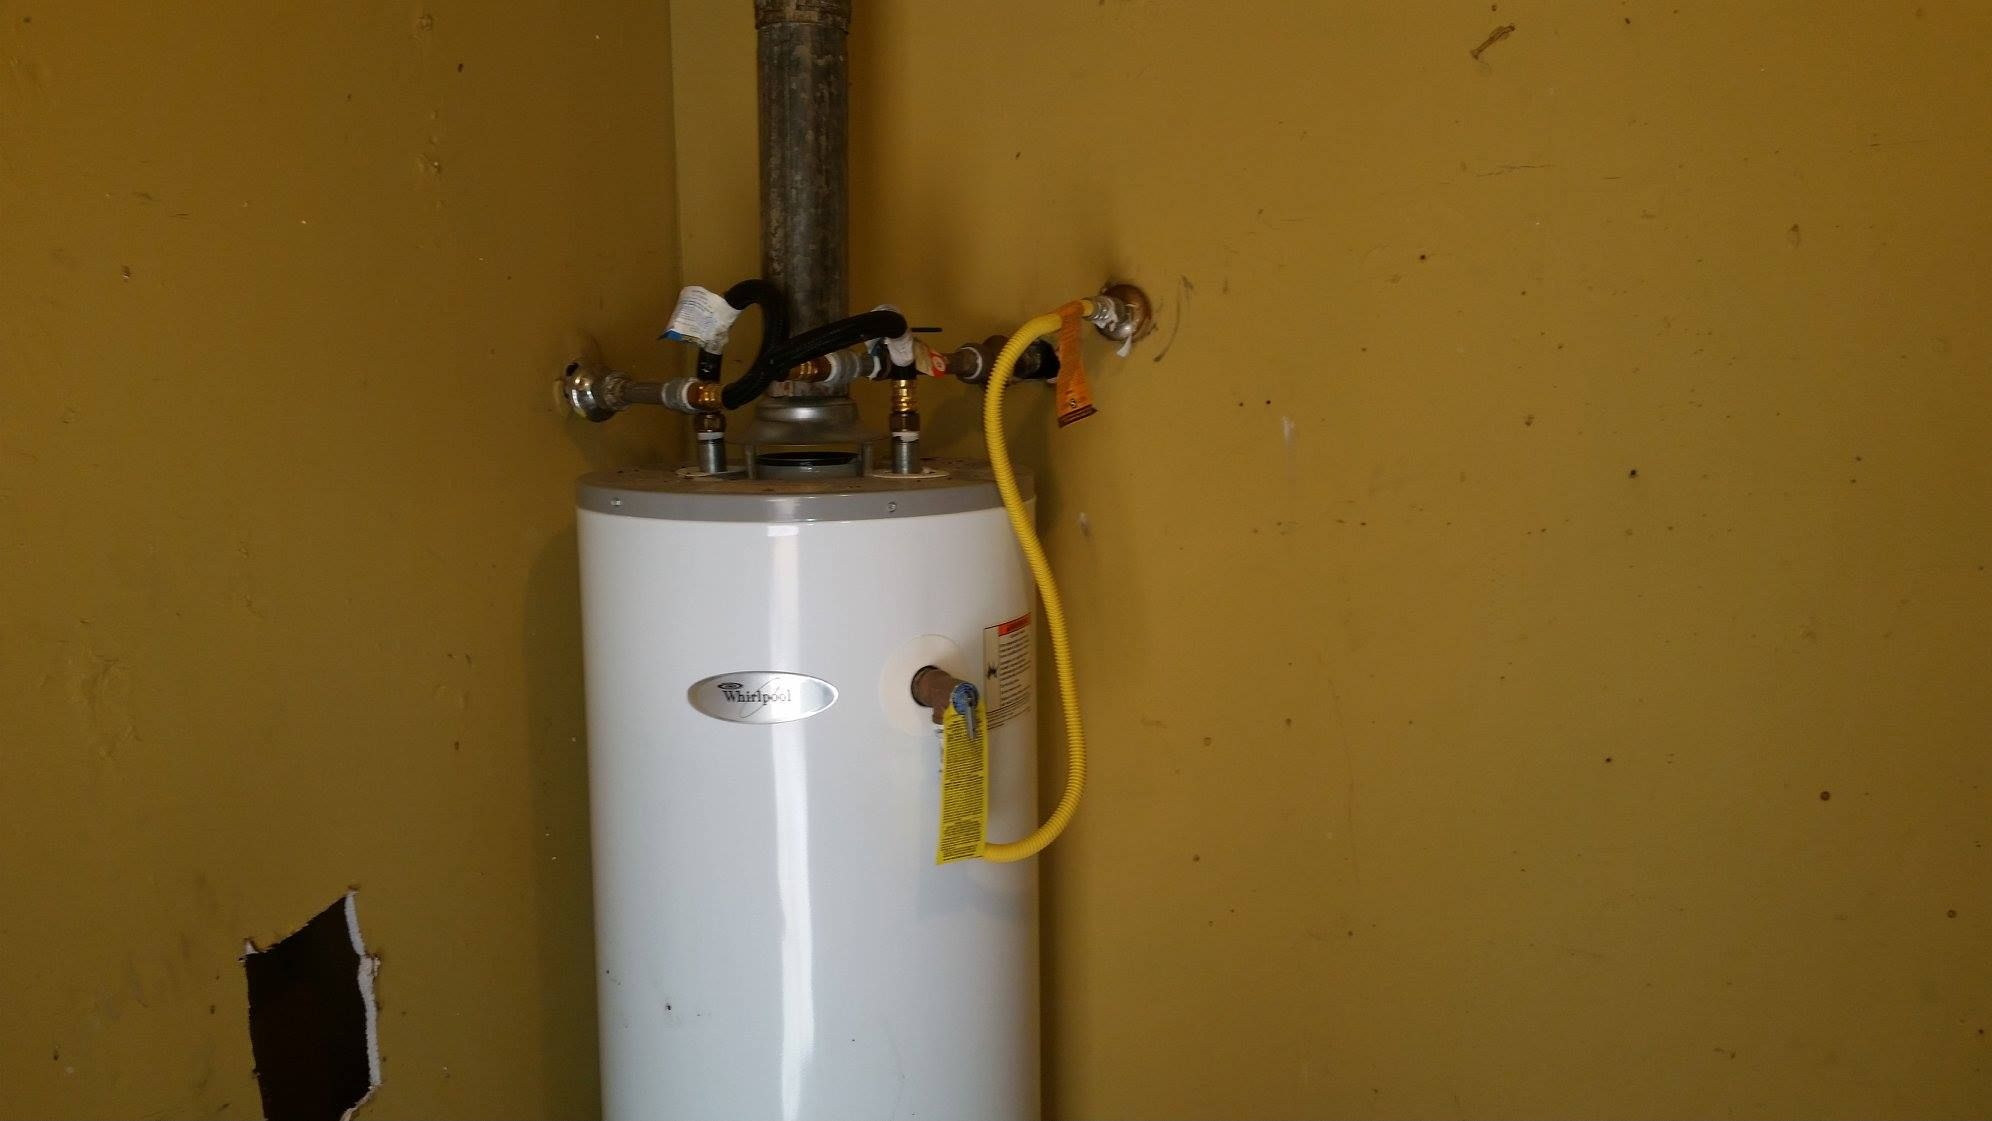 What The Heck Somebody Used A Yellow Gas Line To Connect The Drain From The T P On The Water Heater There Are Other Is Hvac Humor Plumbing Home Inspection